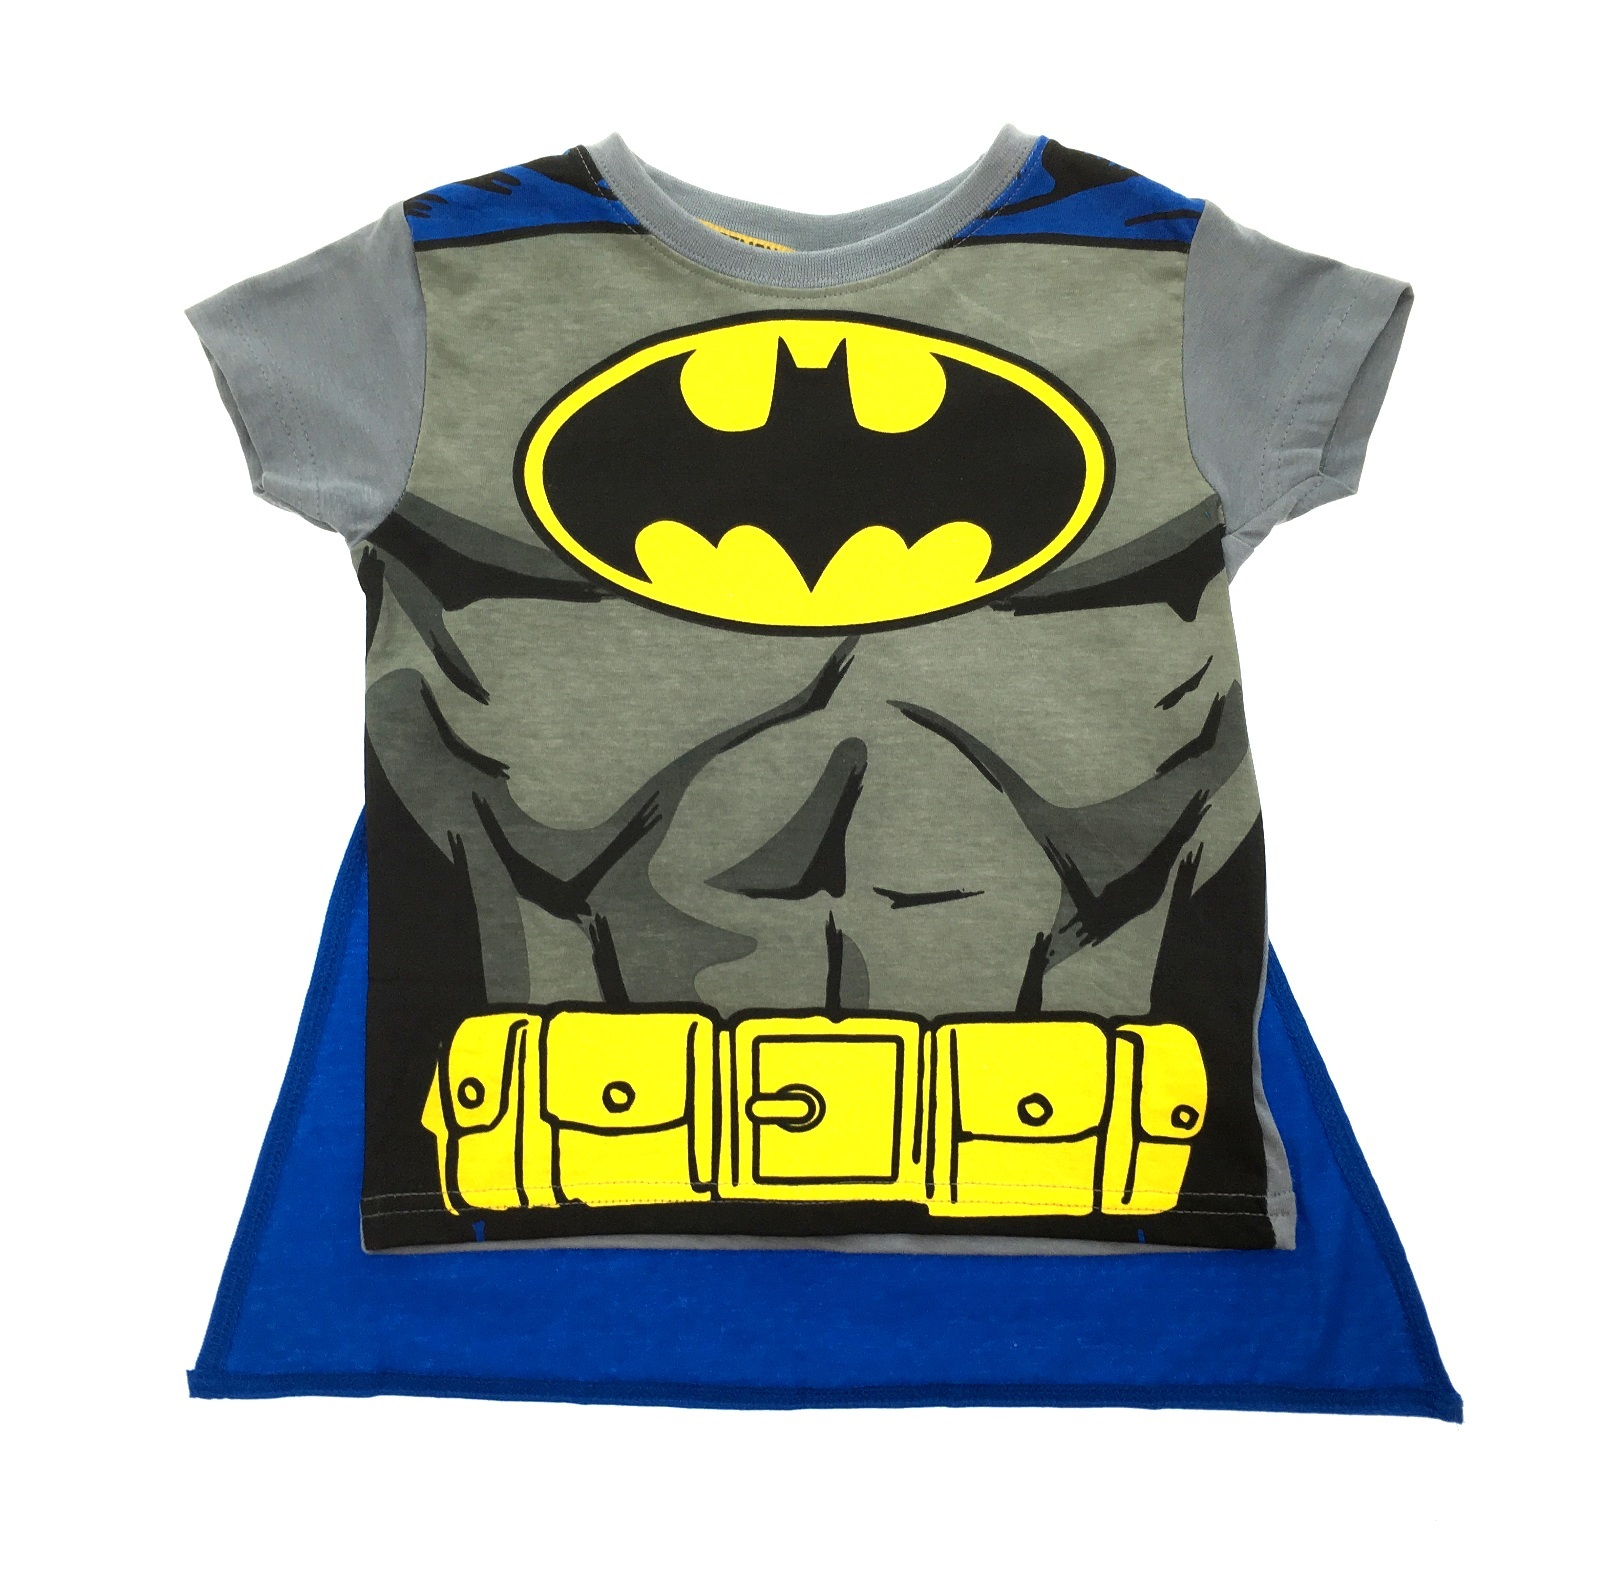 Find great deals on eBay for boys batman shirt with cape. Shop with confidence.